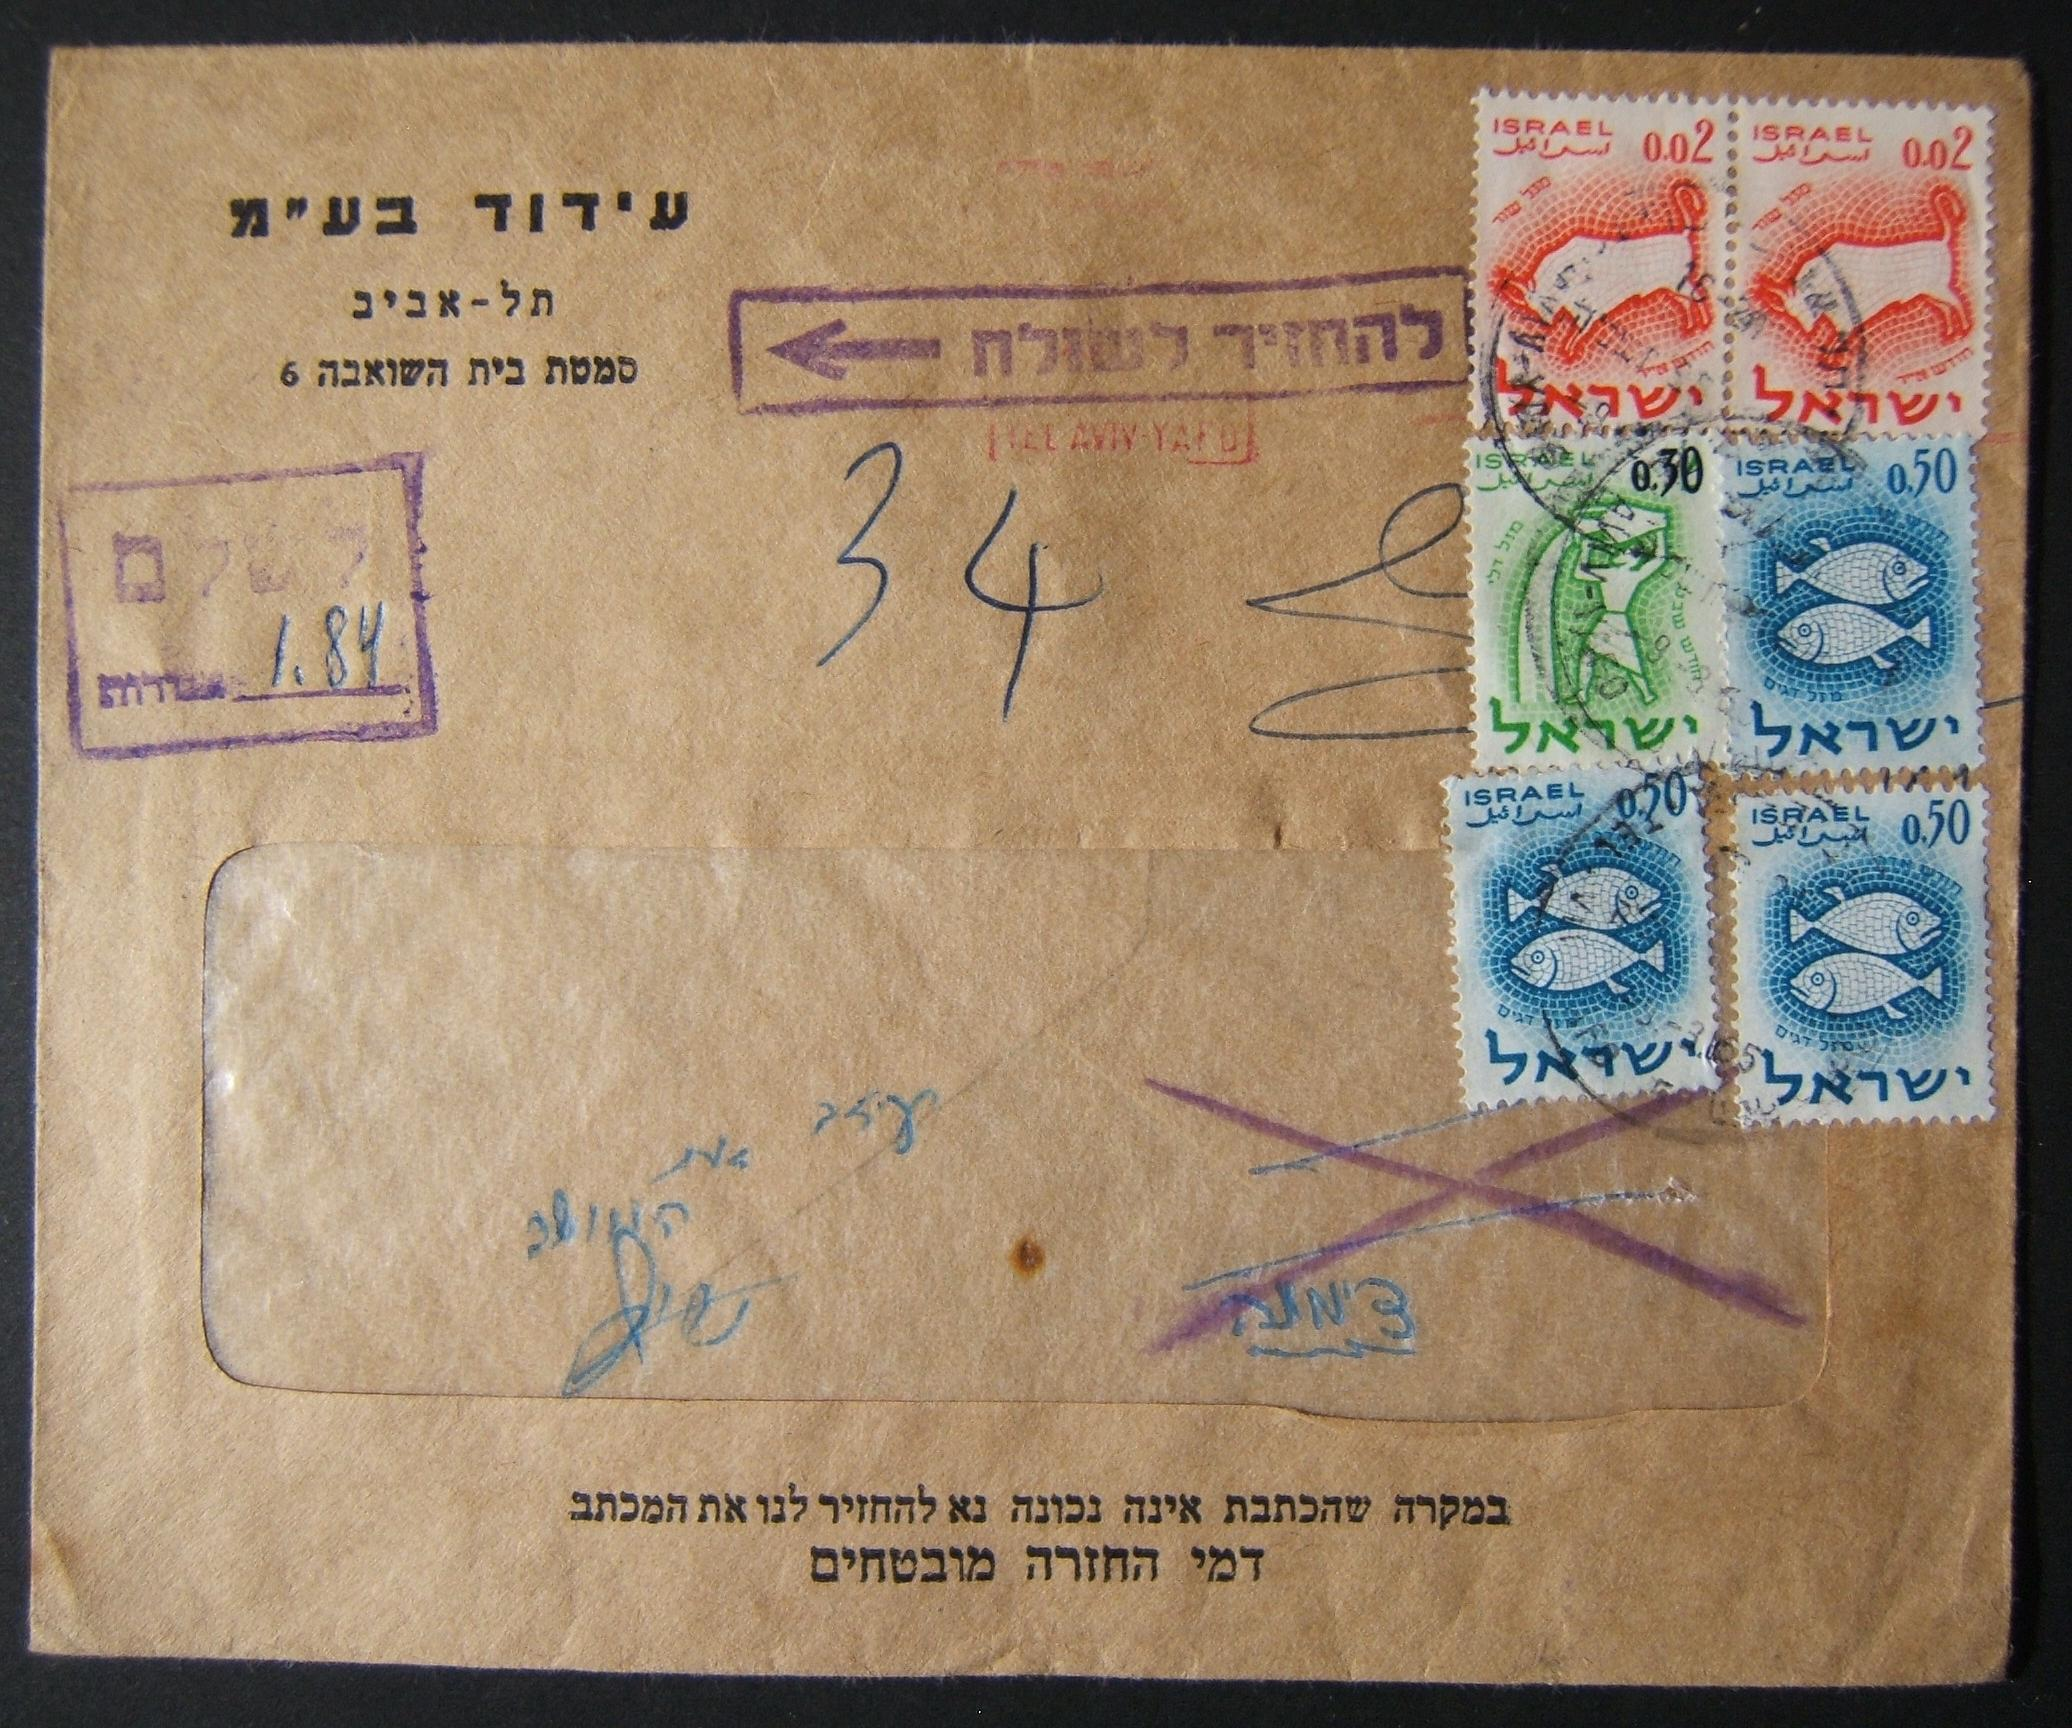 1965 domestic 'top of the pile' double re-routed taxed franking: March 1965 printed matter commercial cover ex TLV branch of Idud Ltd. to RAMLA franked by machine prepayment at the